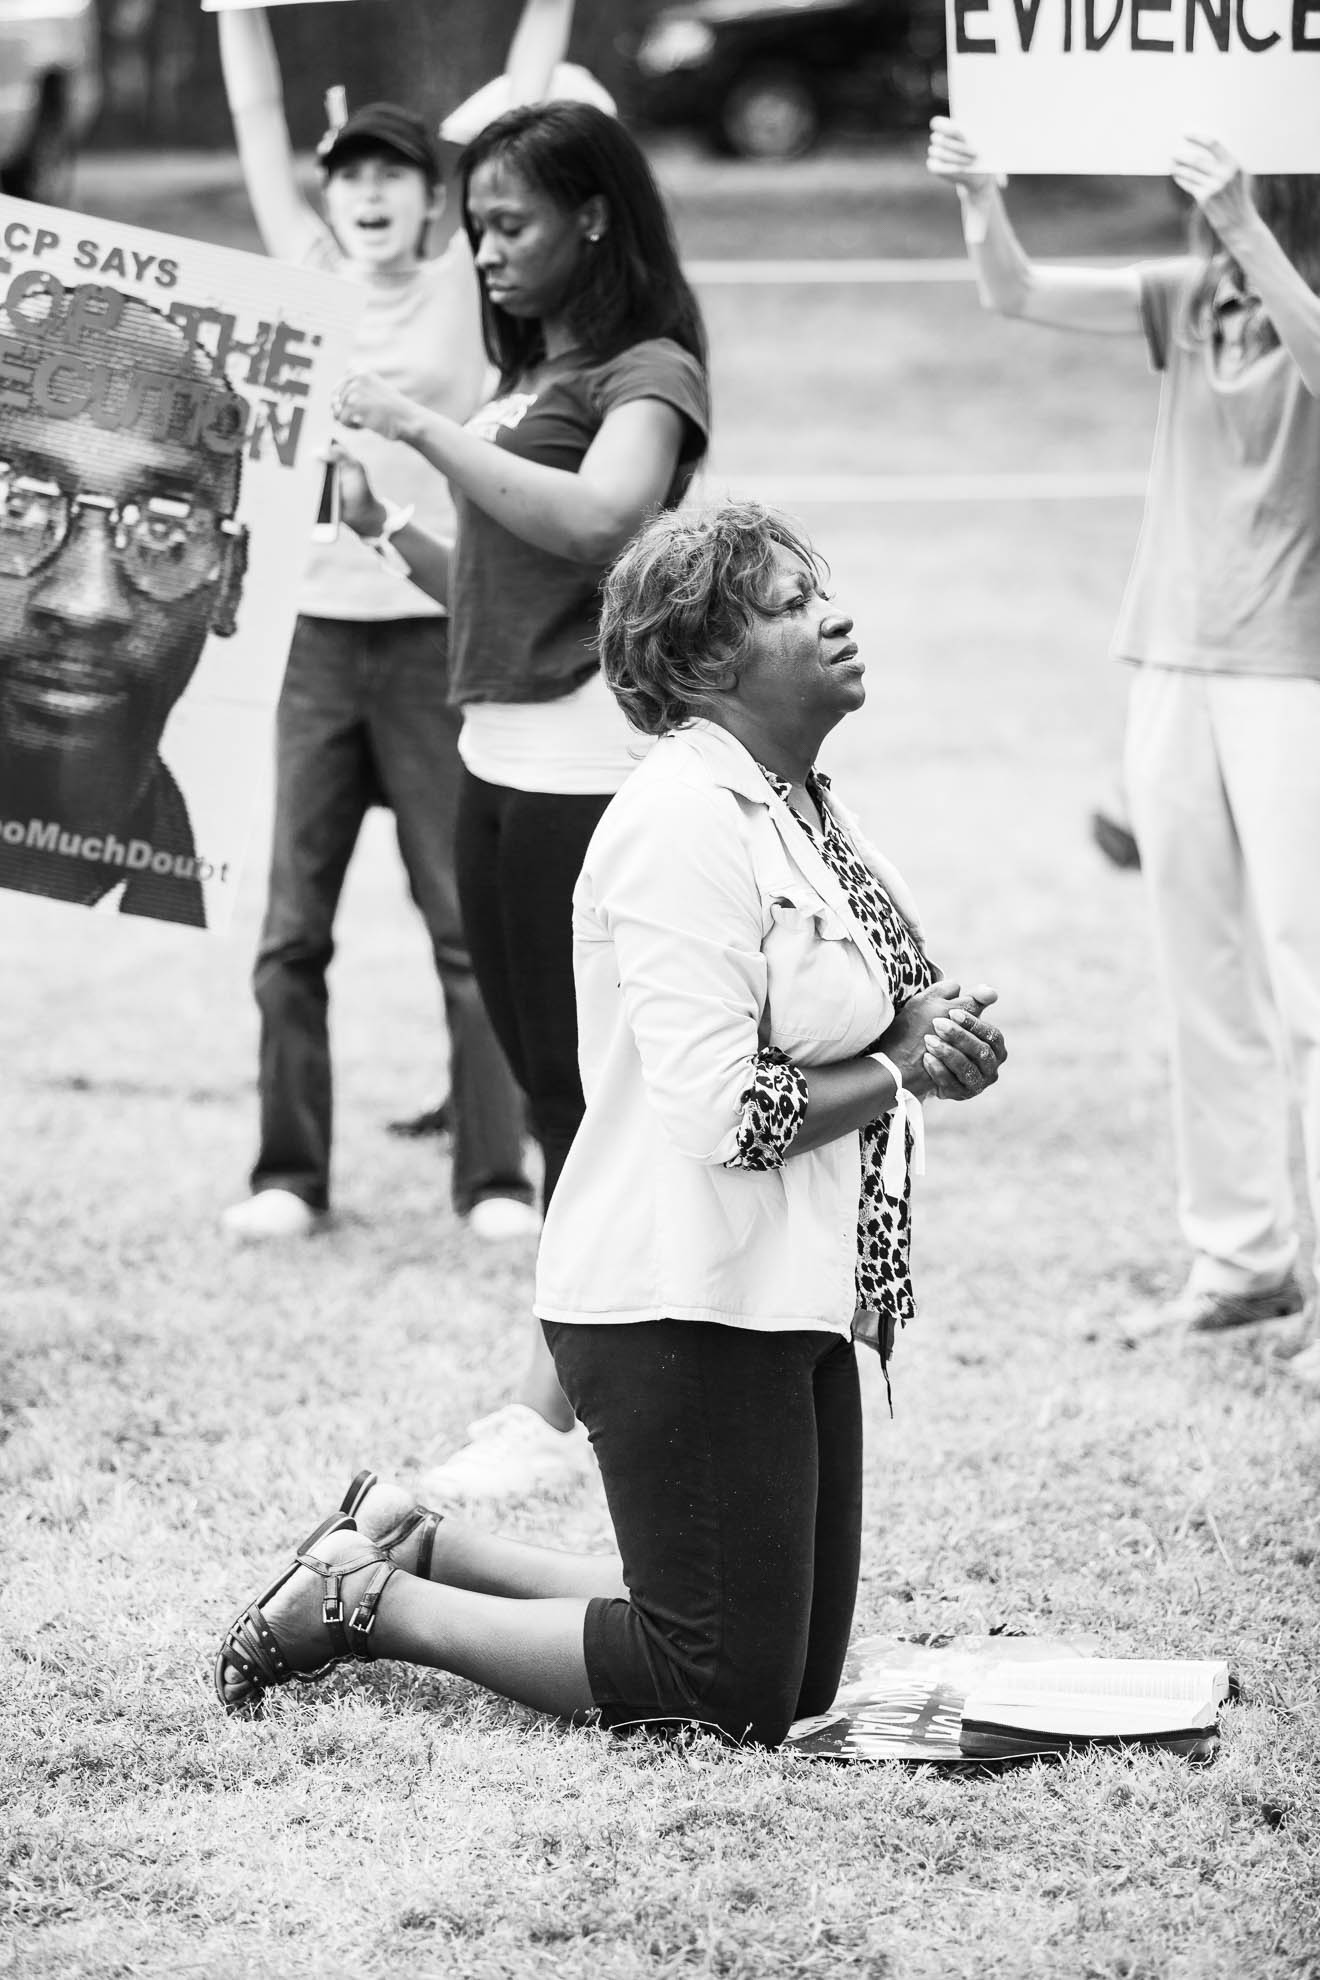 Protests and vigils in the execution of Troy Davis in Georgia - a death penalty innocence case.